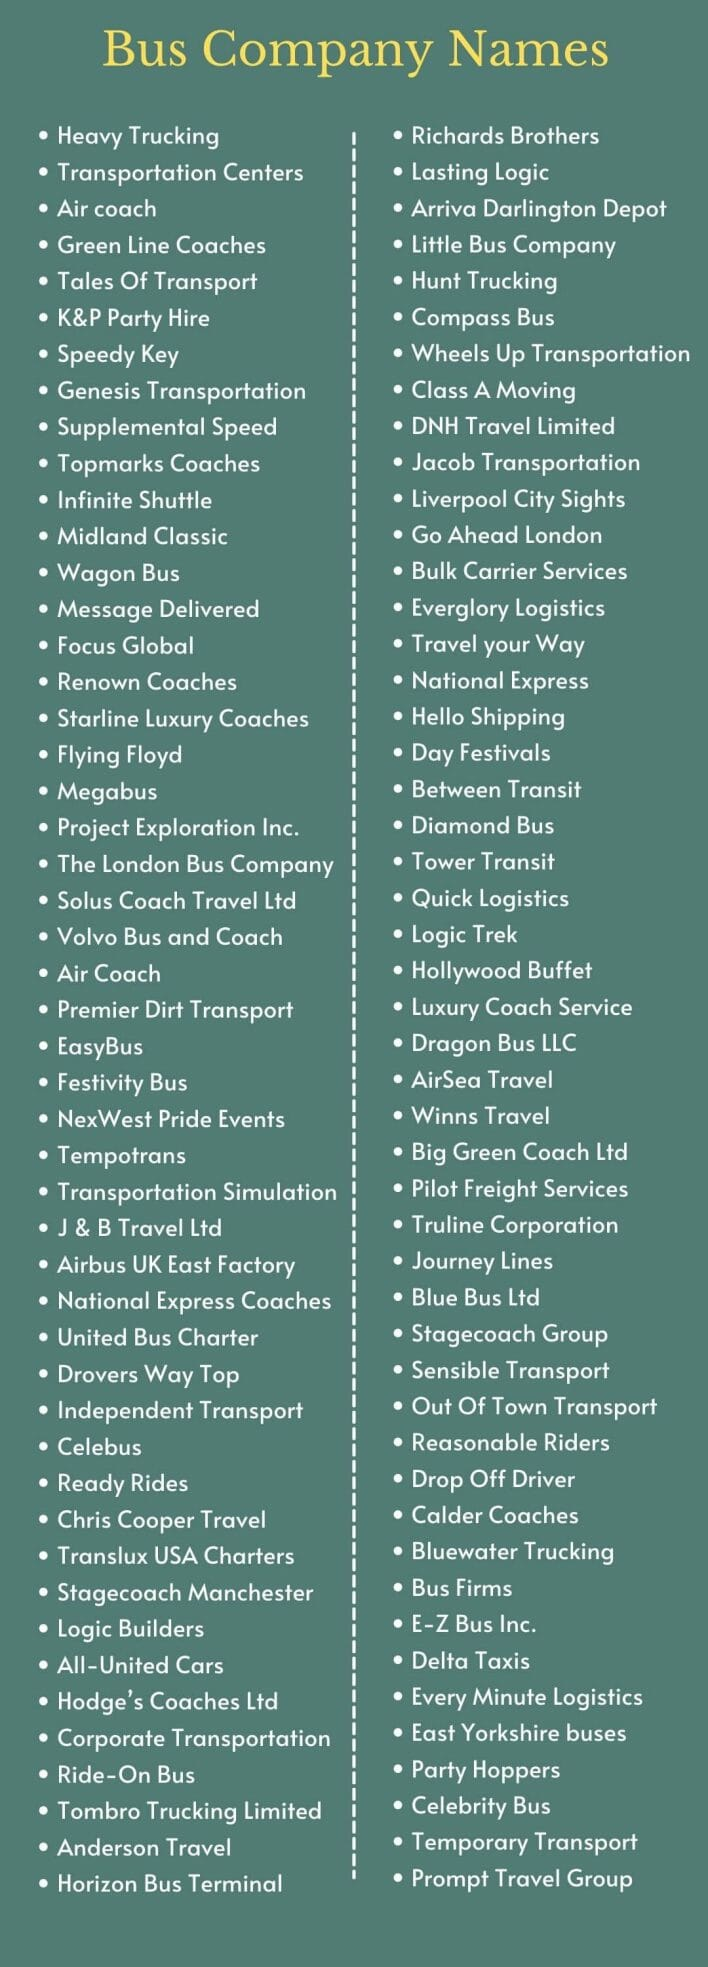 Bus Company Names: Infographic